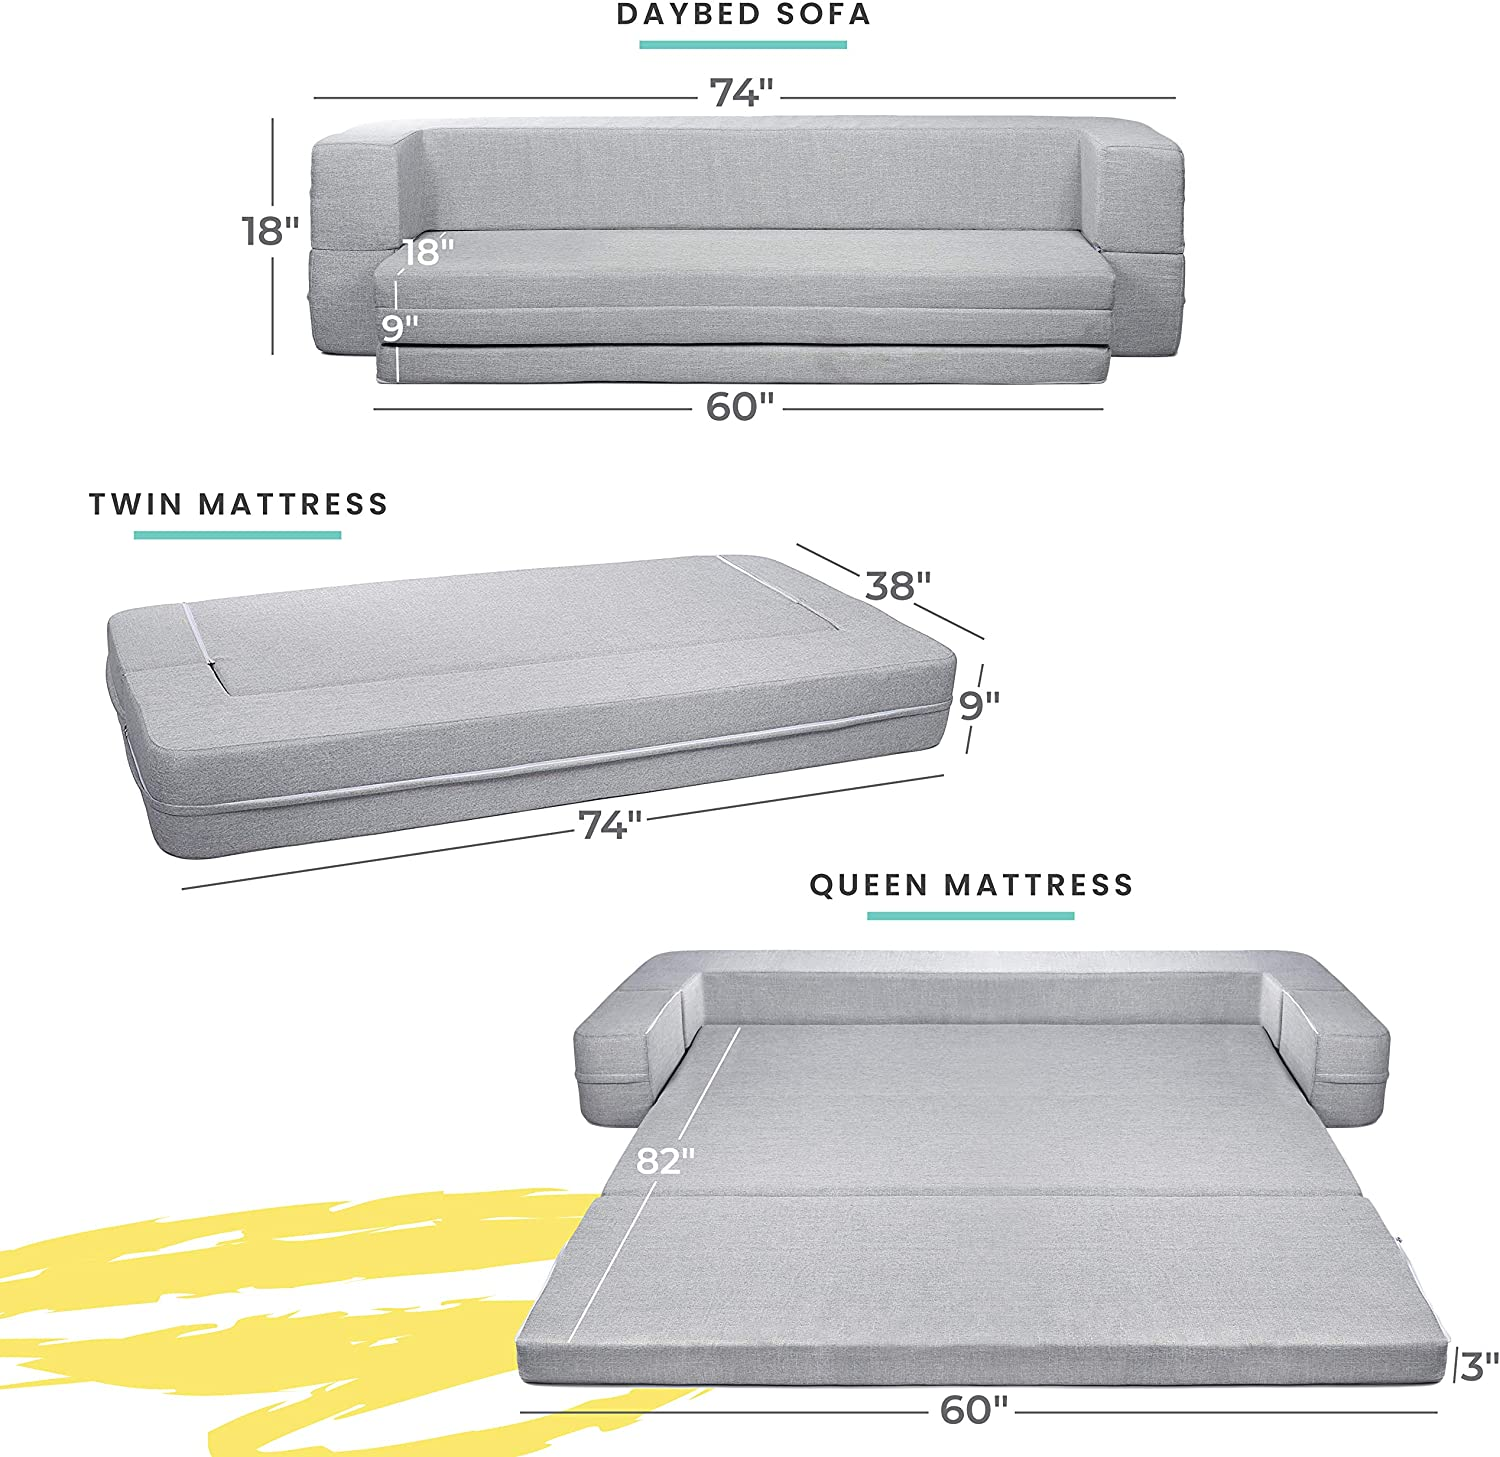 Milliard Daybed Sofa Couch Queen To Twin Folding Mattress 3 In 1 Milliard Bedding The Ultimate Sleep Experience